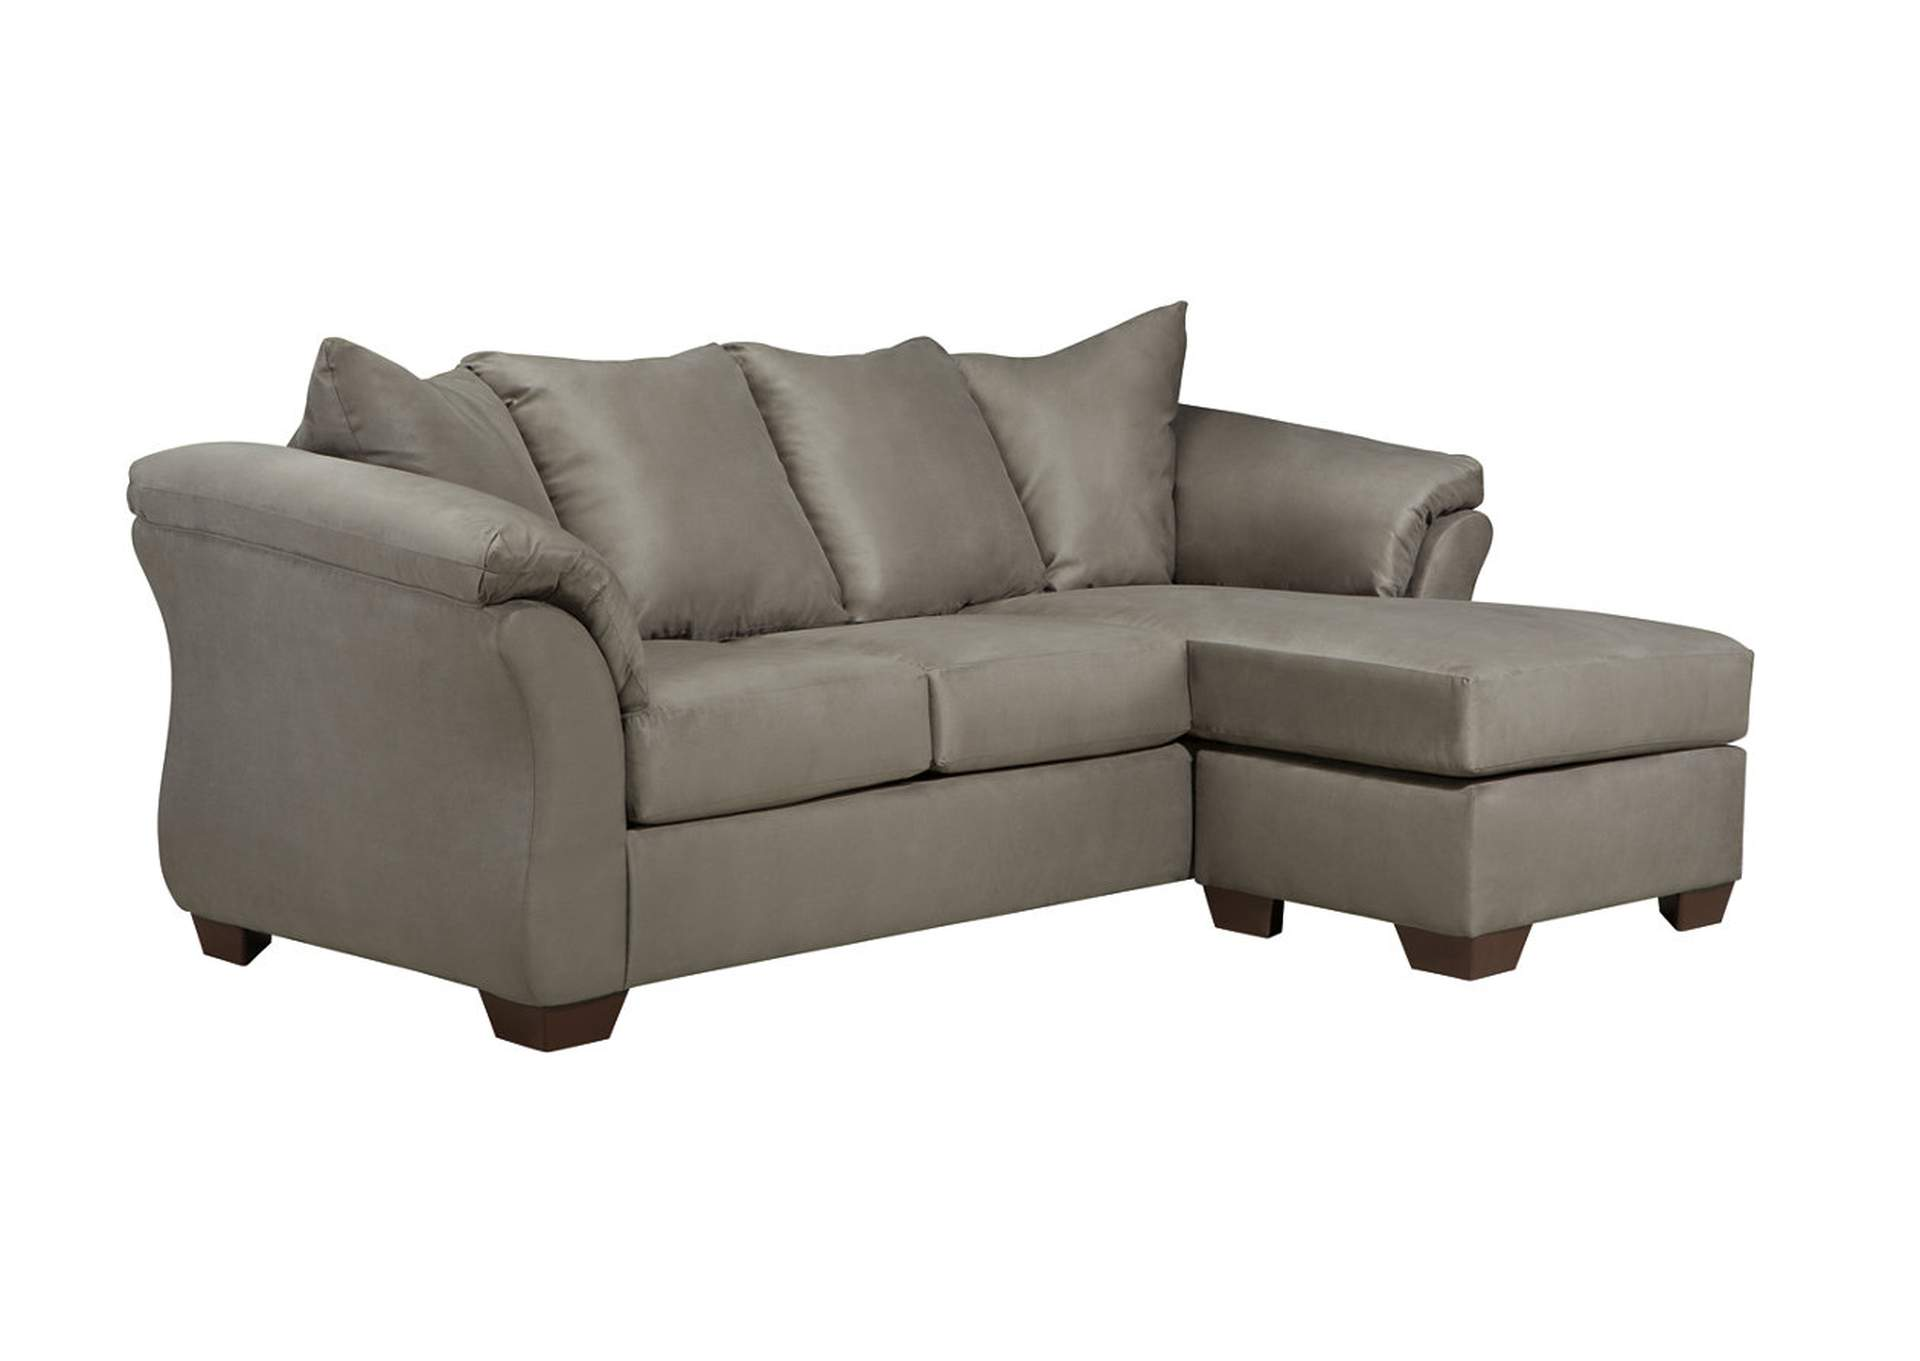 Darcy Cobblestone Sofa Chaise,Signature Design By Ashley